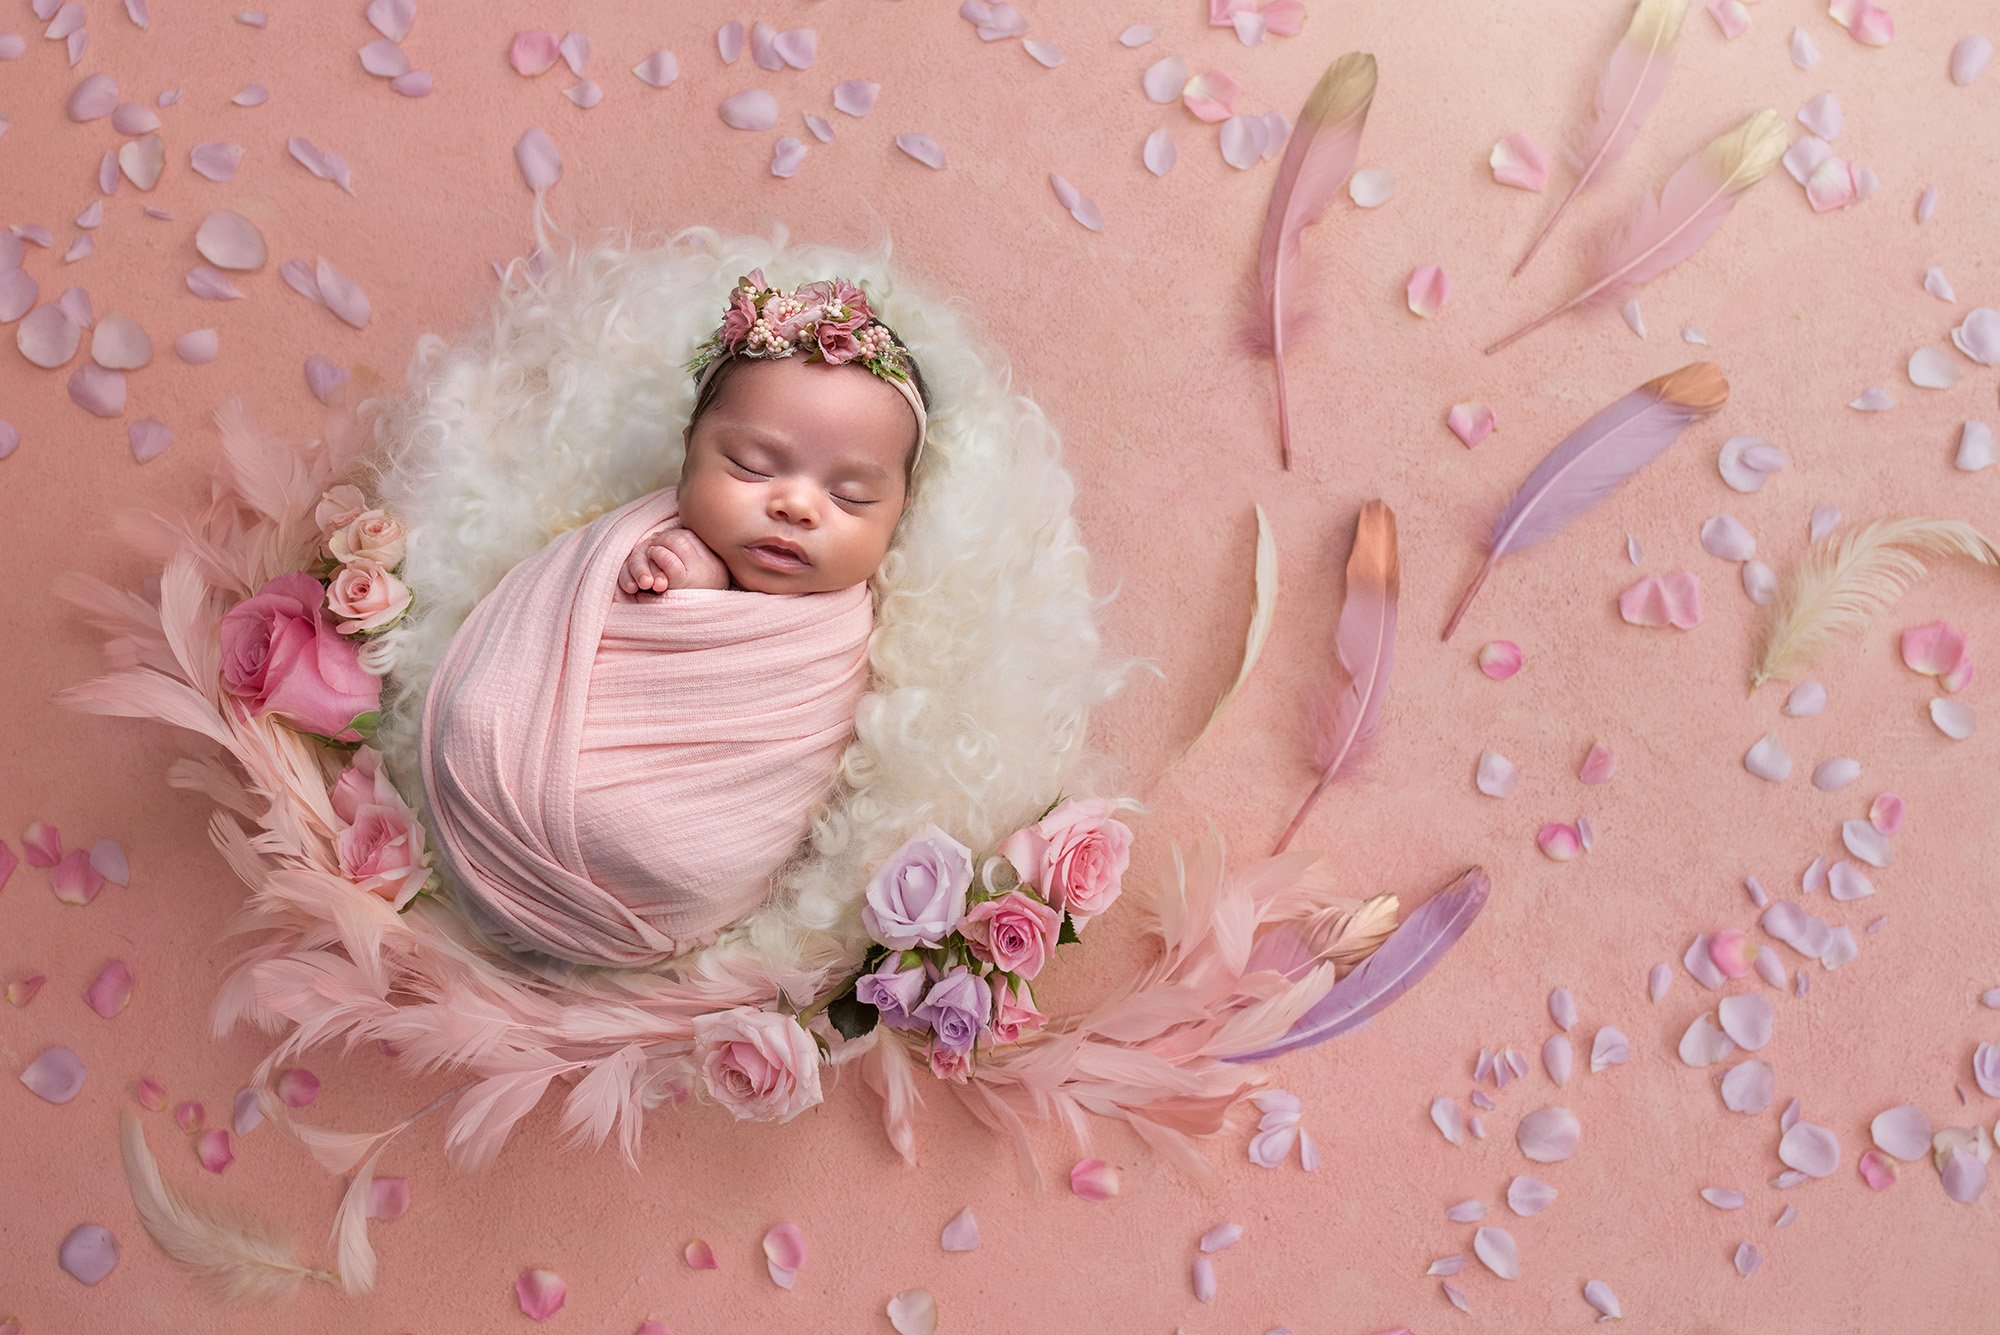 girly girl newborn photos newborn baby girl swaddled in pink sleeping on fuzzy blanket surrounded by feathers and flower petals